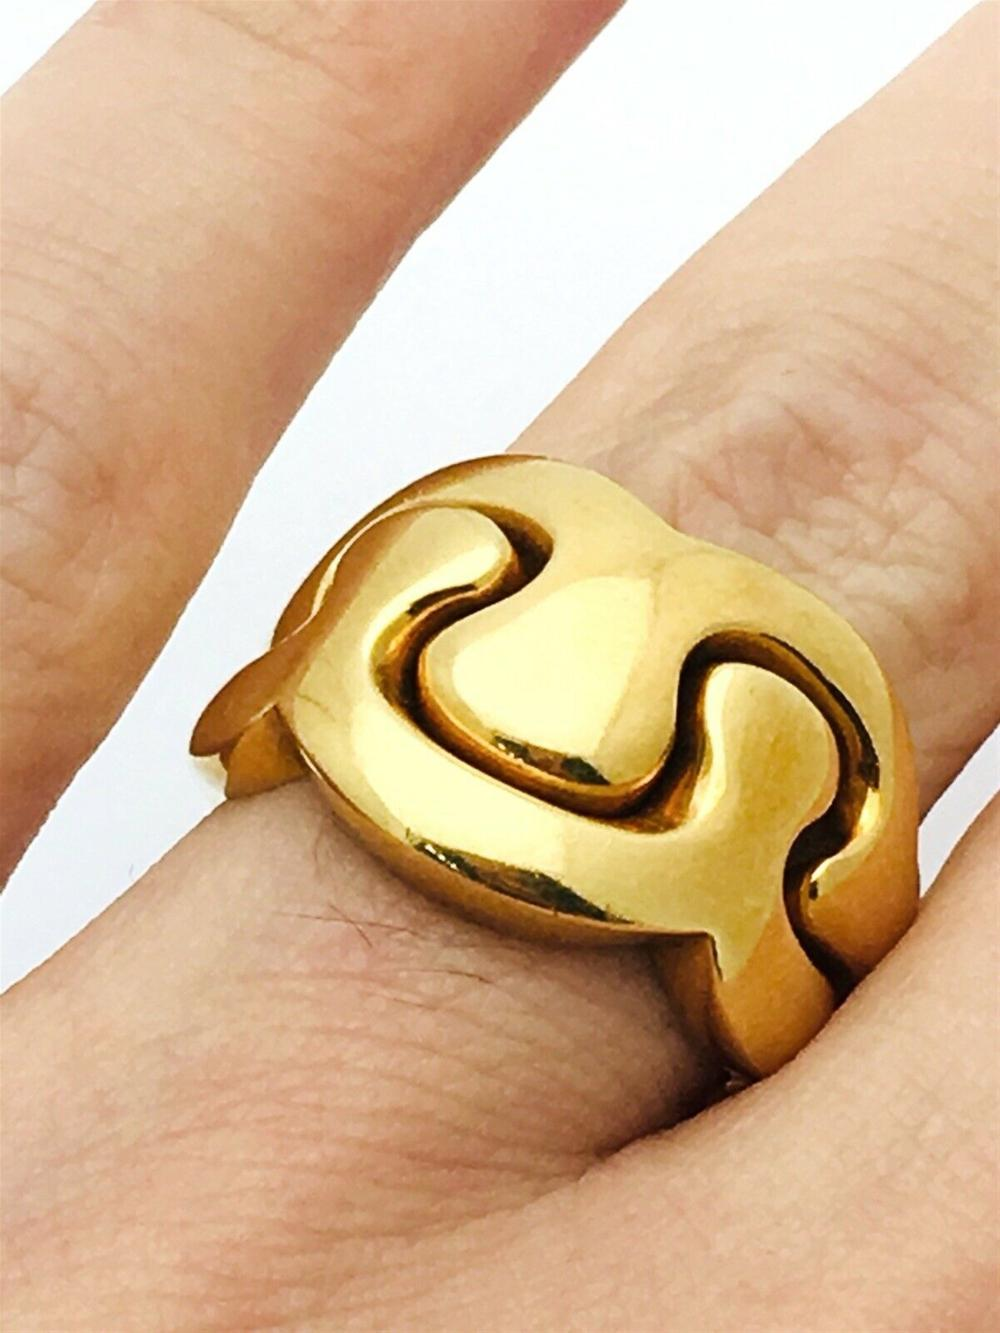 Van Cleef And Arpels 18k Yellow Gold Double Ring Sz 6